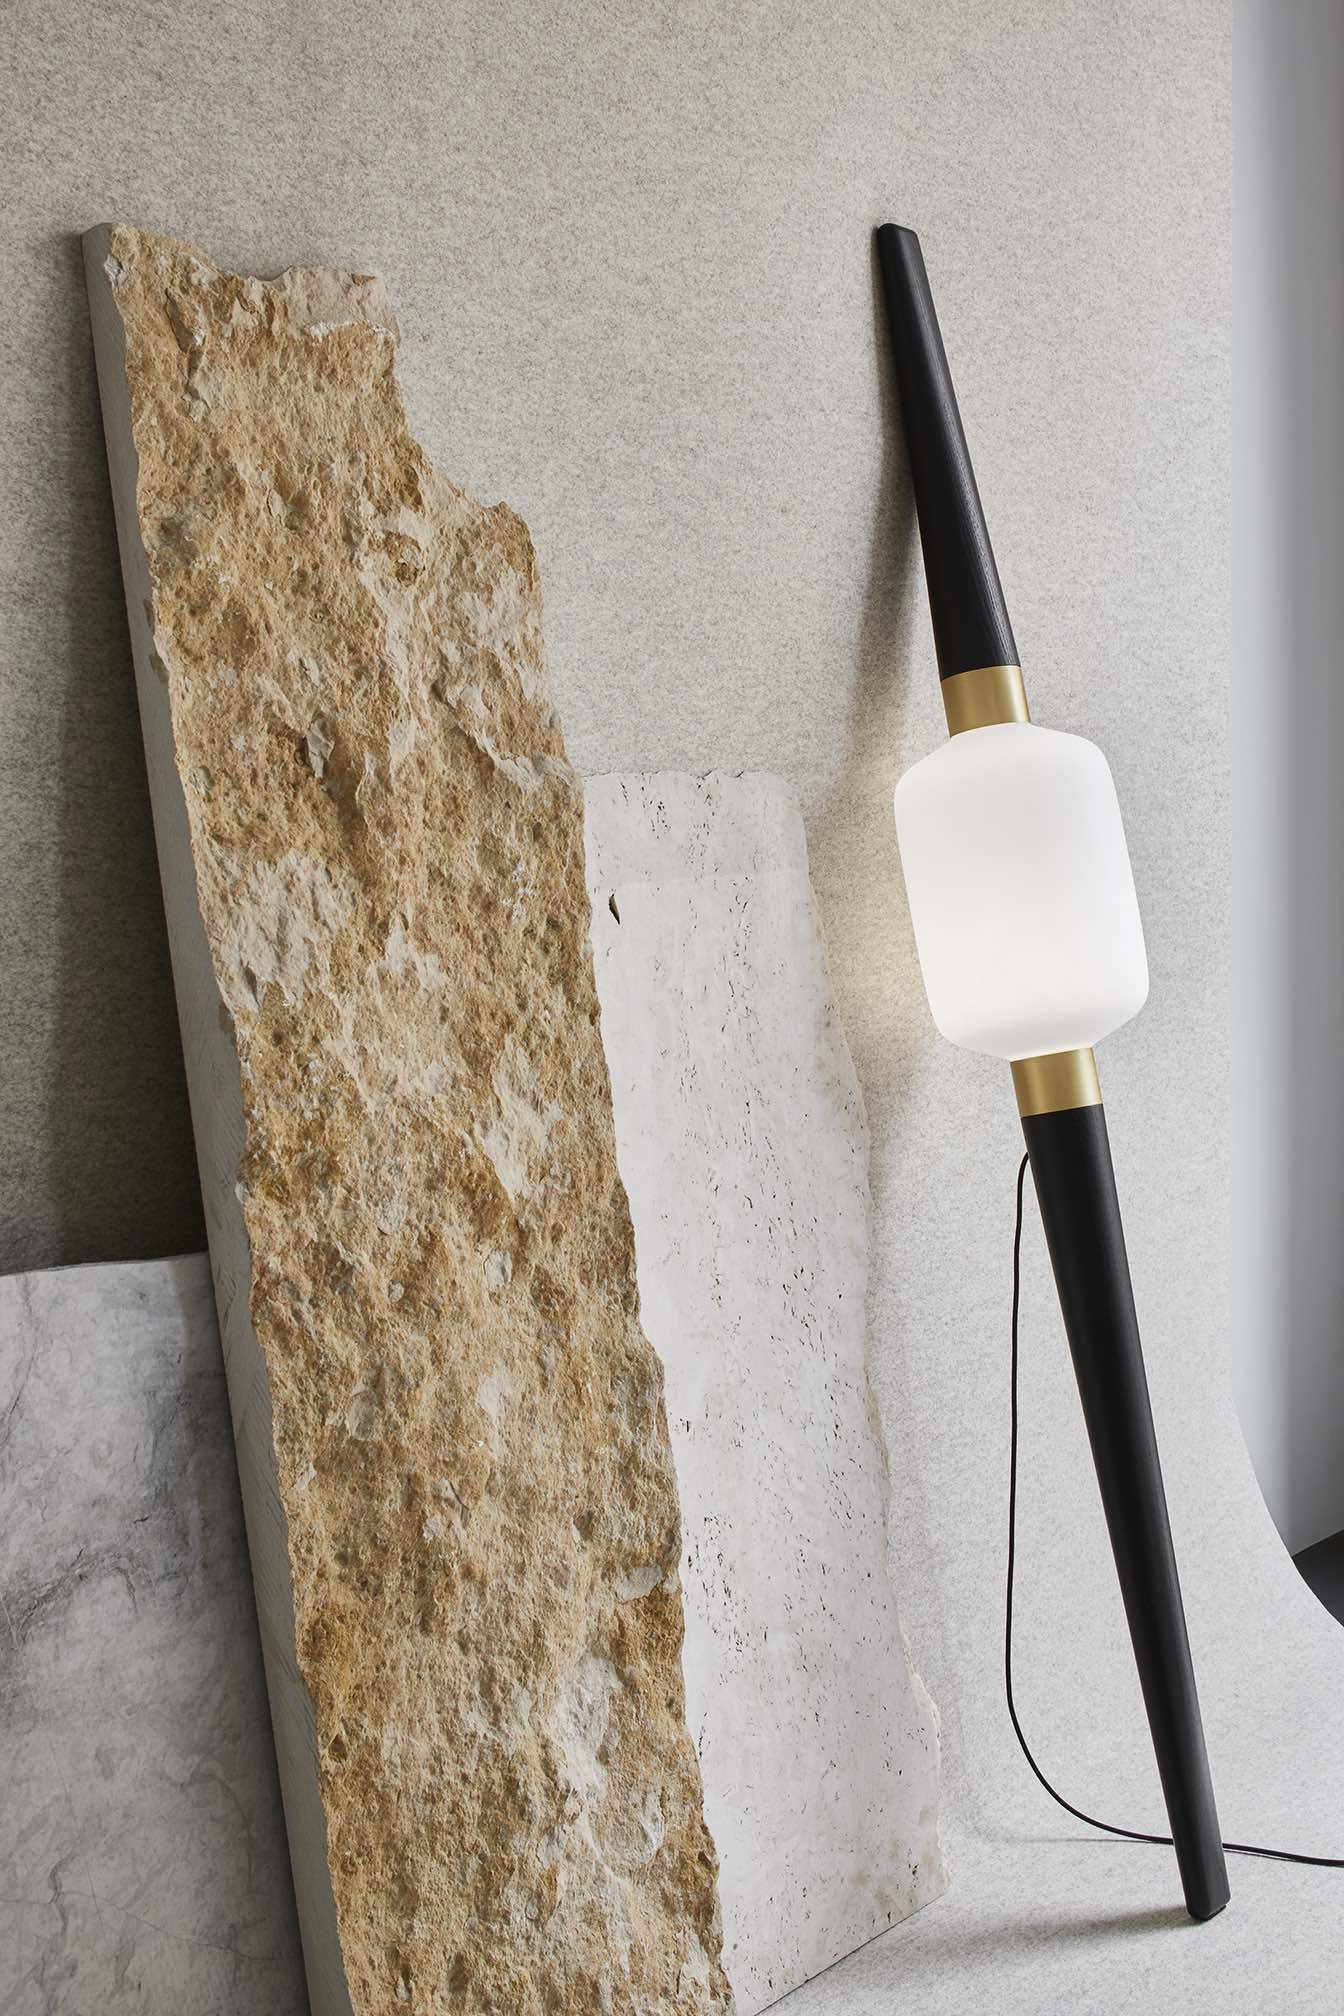 B-Light-floorlamp-walllamp-design-Dan-Yeffet-Collection-Particulière